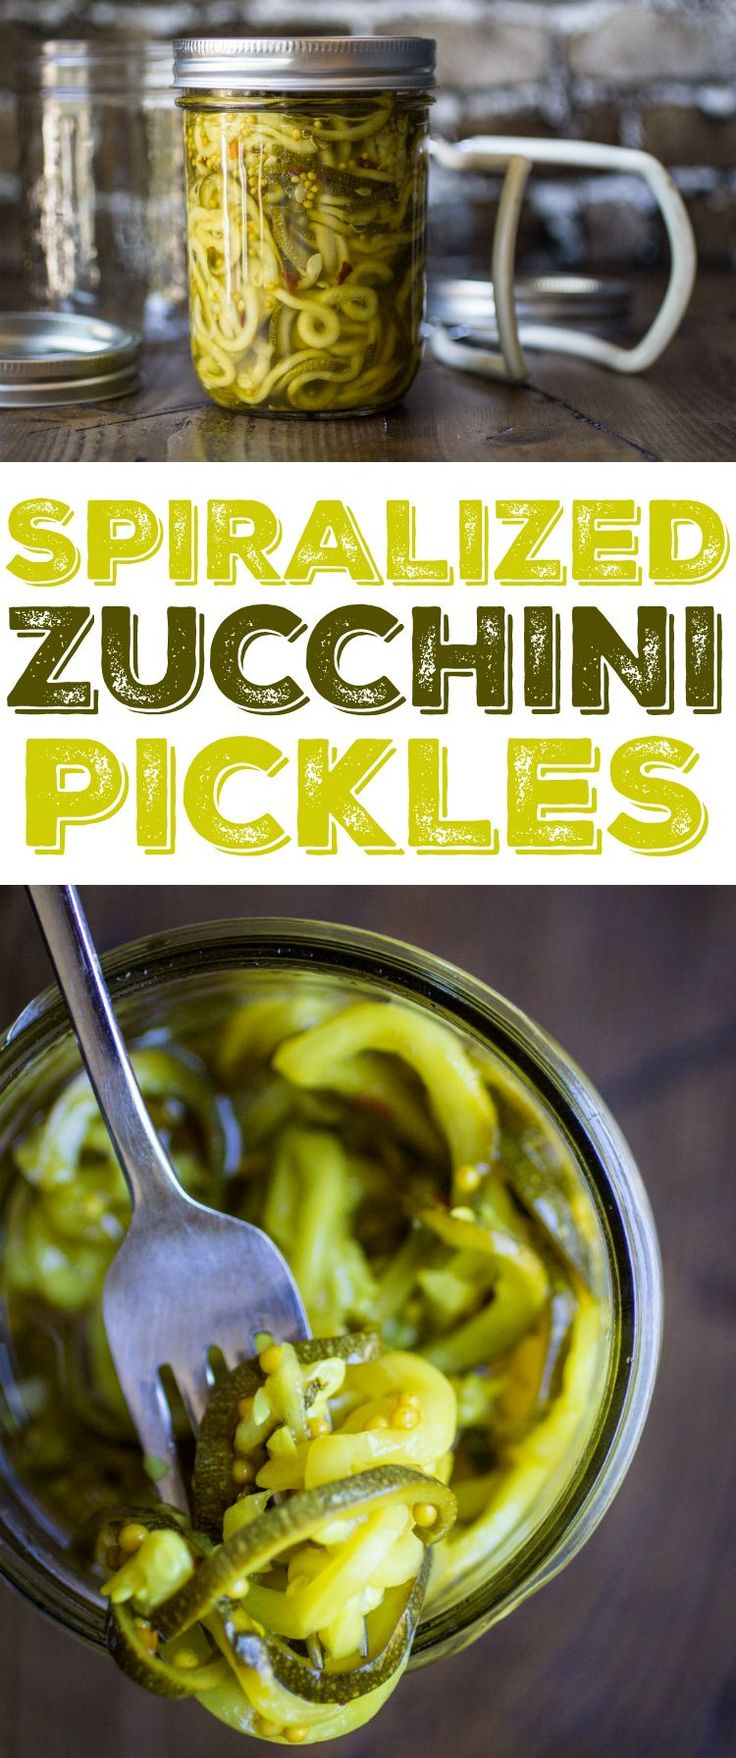 Zucchini pickles are the perfect way to use up extra produce - spiralizing makes it even more fun!